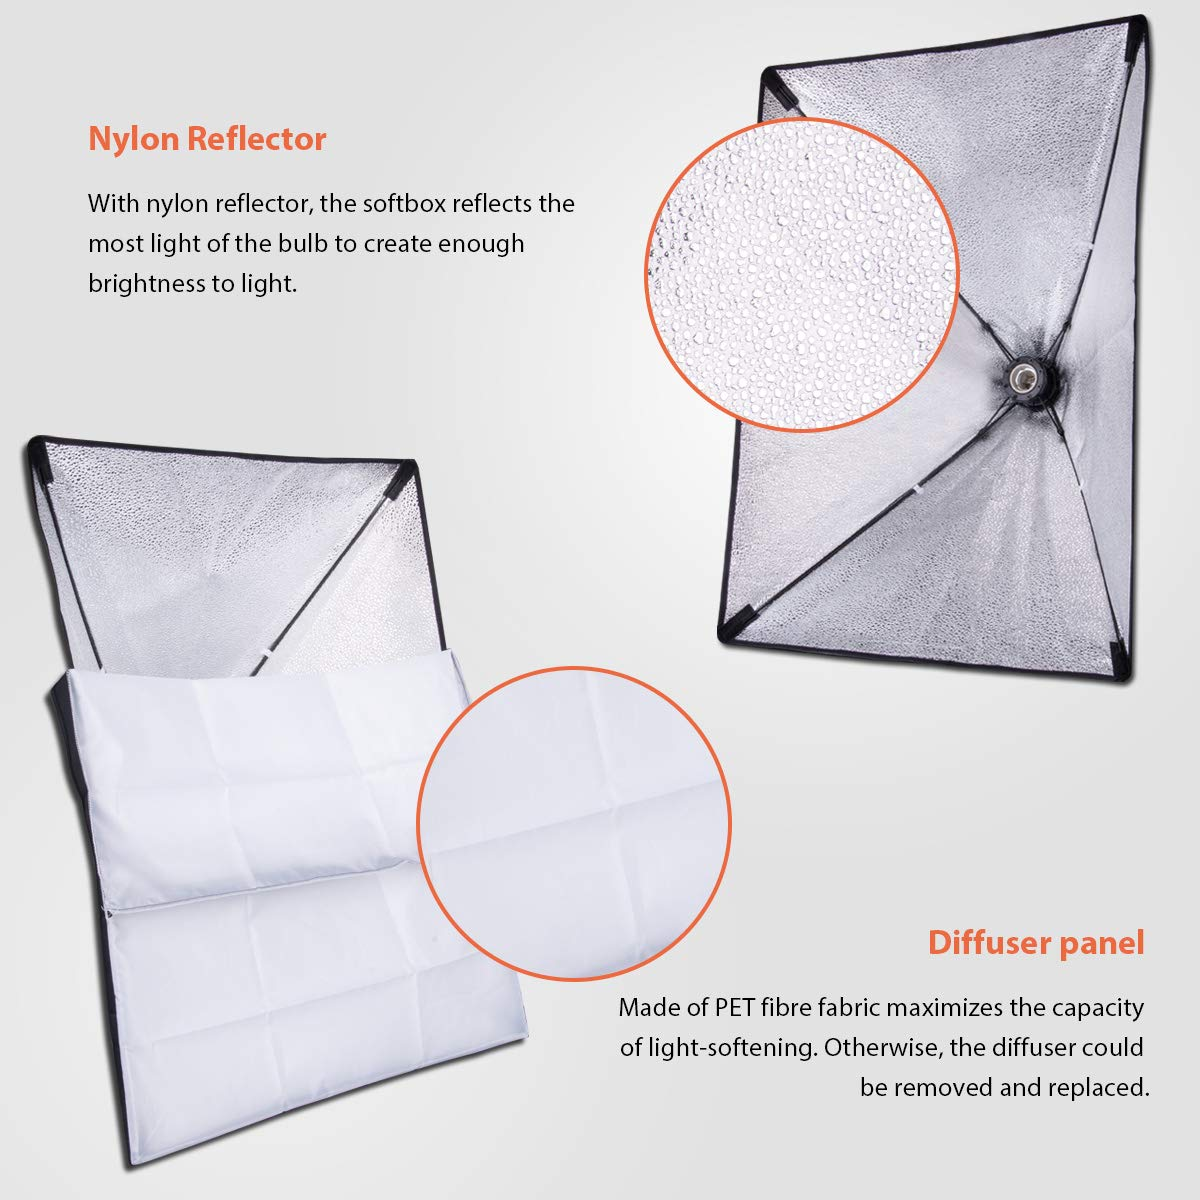 HPUSN Softbox Lighting Kit Professional Studio Photography Continuous Equipment with 85W 5500K E27 Socket Light and 2 Reflectors 50 x 70 cm and 2 Bulbs for Portrait Product Fashion Photography by HPUSN (Image #4)